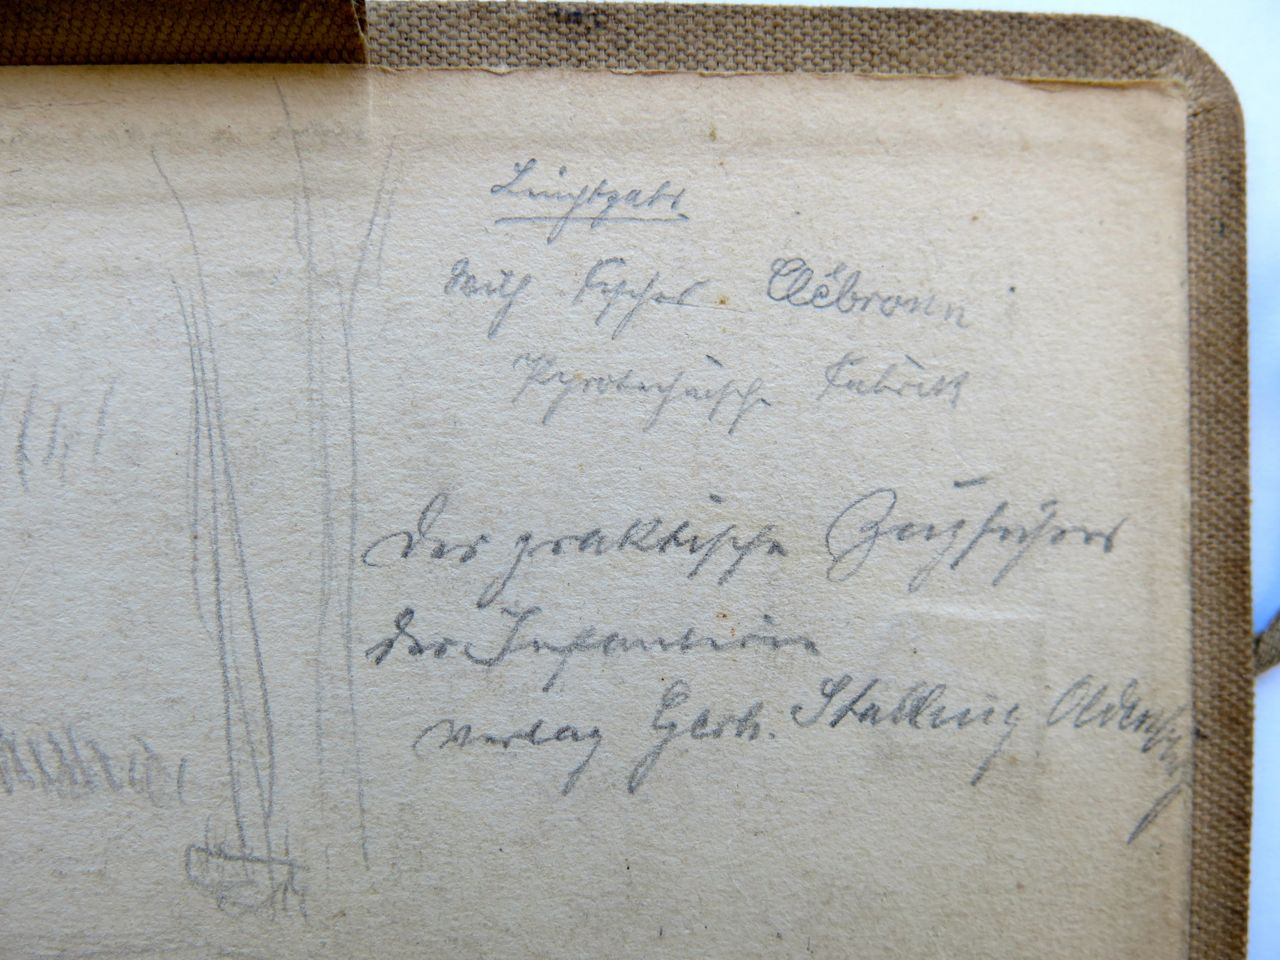 Kolling's inscription inside the back cover.